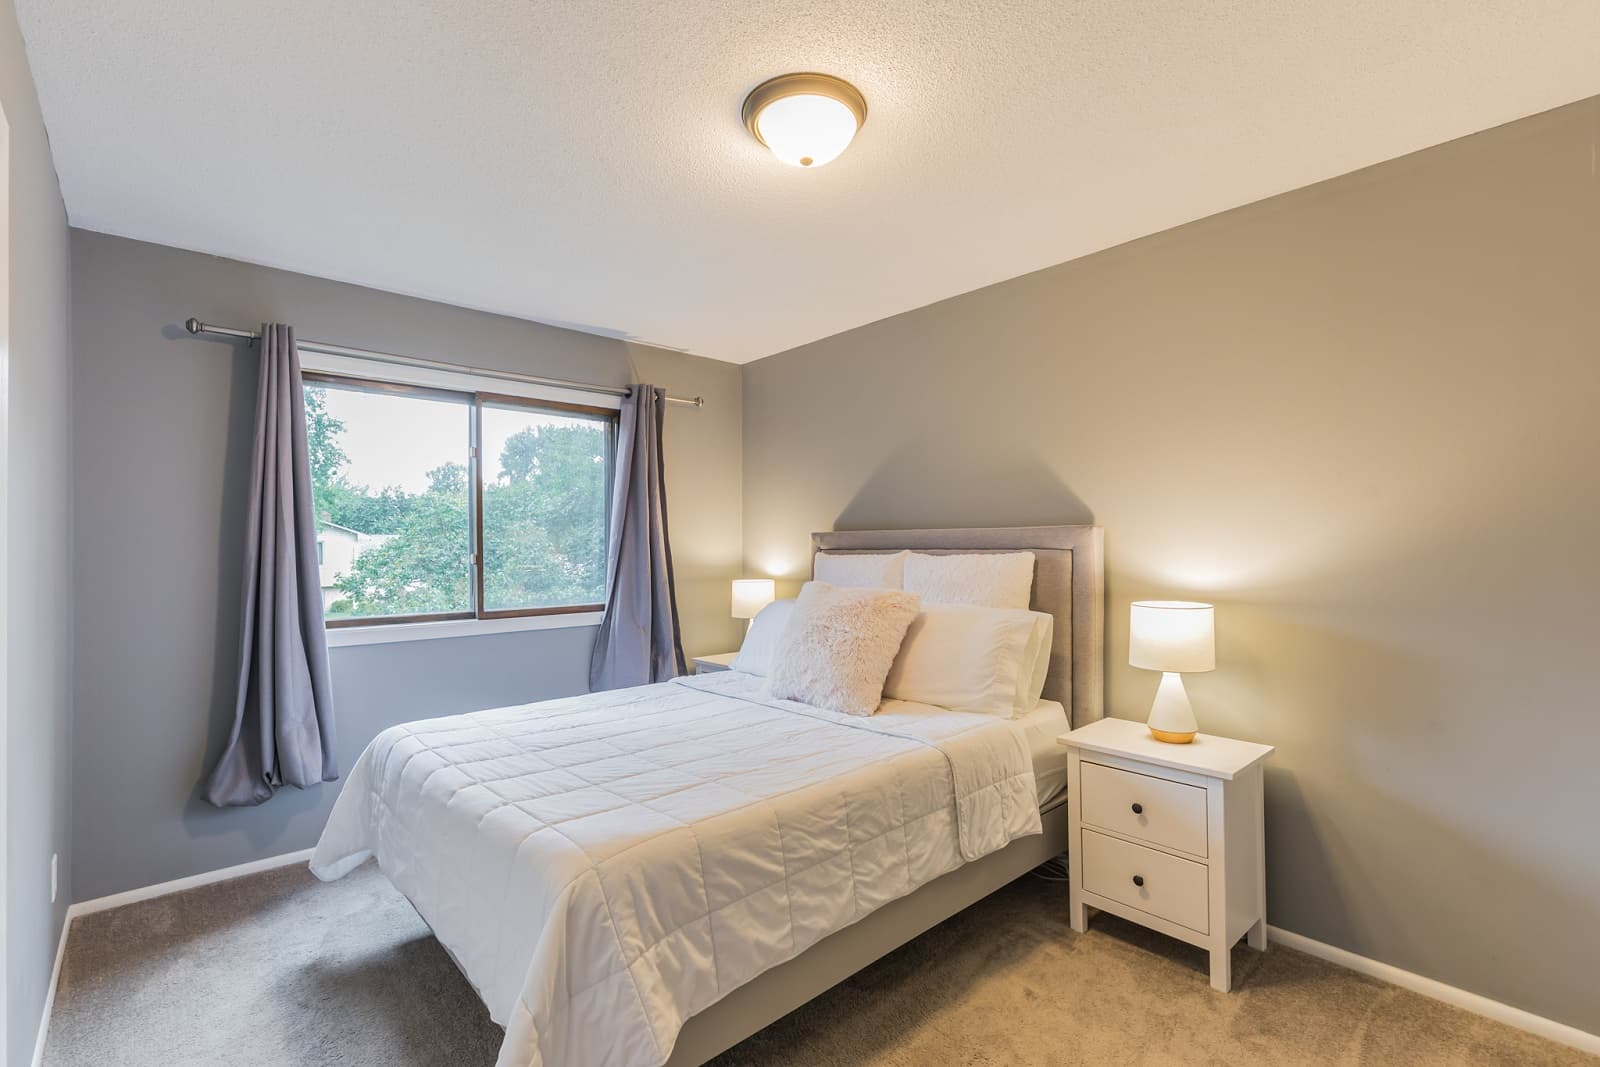 Real Estate Photography in Minneapolis - MN - Bedroom View